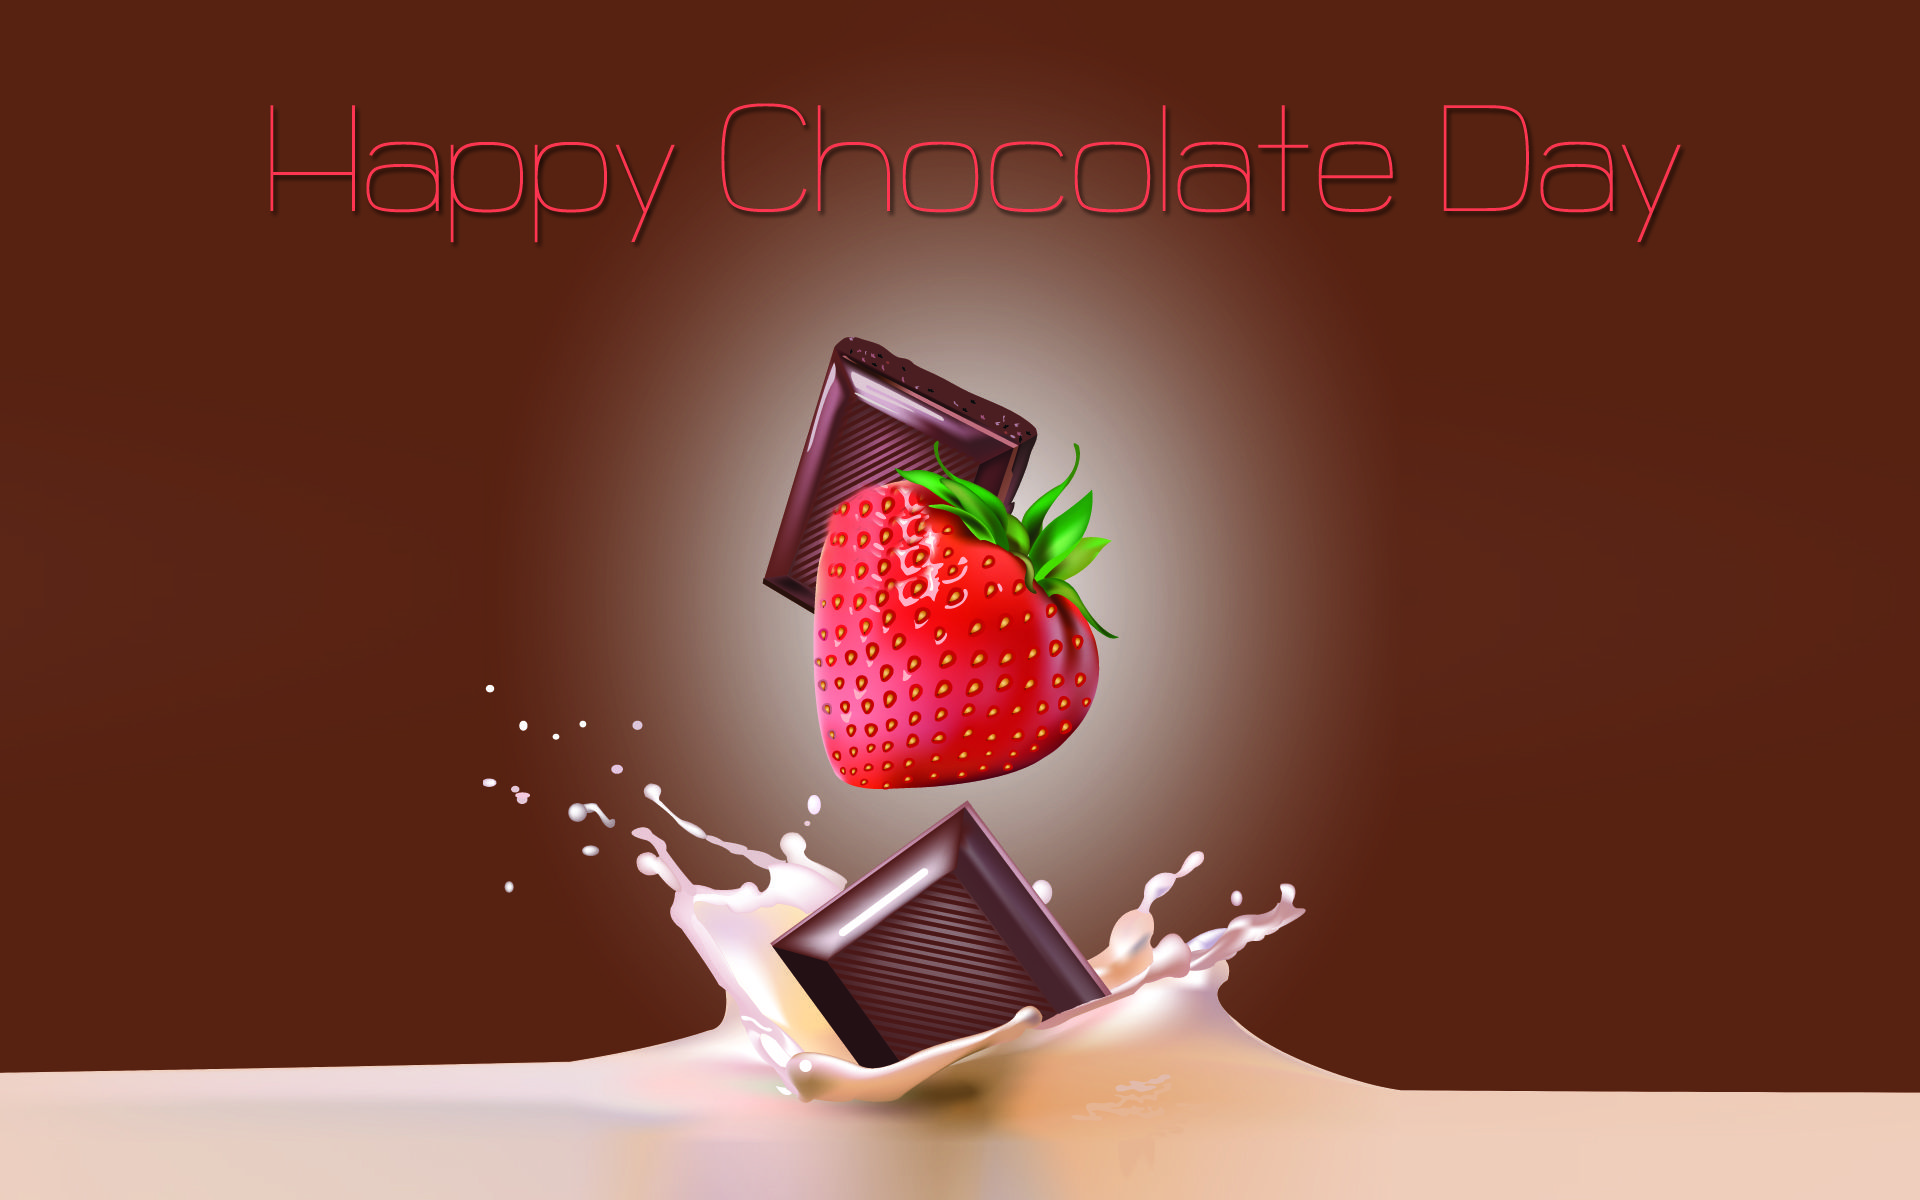 Happy Chocolate Day Quotes Status For Facebook Whatsapp Instagram Pinterest L4lol Happy Chocolate Day Chocolate Day Wallpaper Happy Chocolate Day Images Happy chocolate day images n quotes